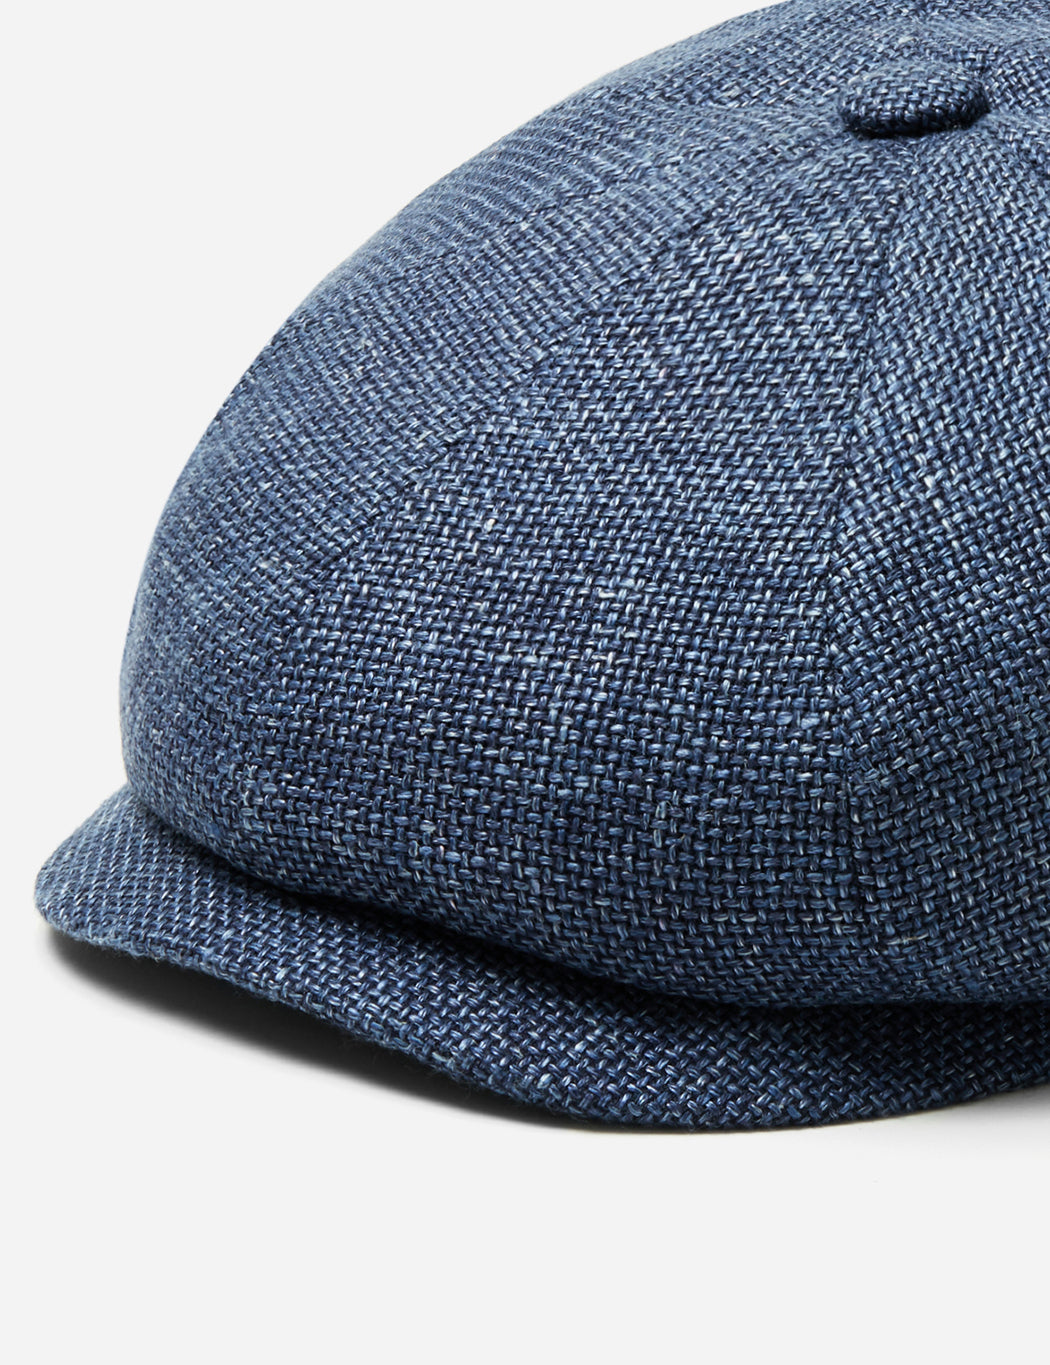 16680a10acbf6 ... Stetson Hatteras Ellington Newsboy Cap (Silk Wool) - Mottled Blue ...